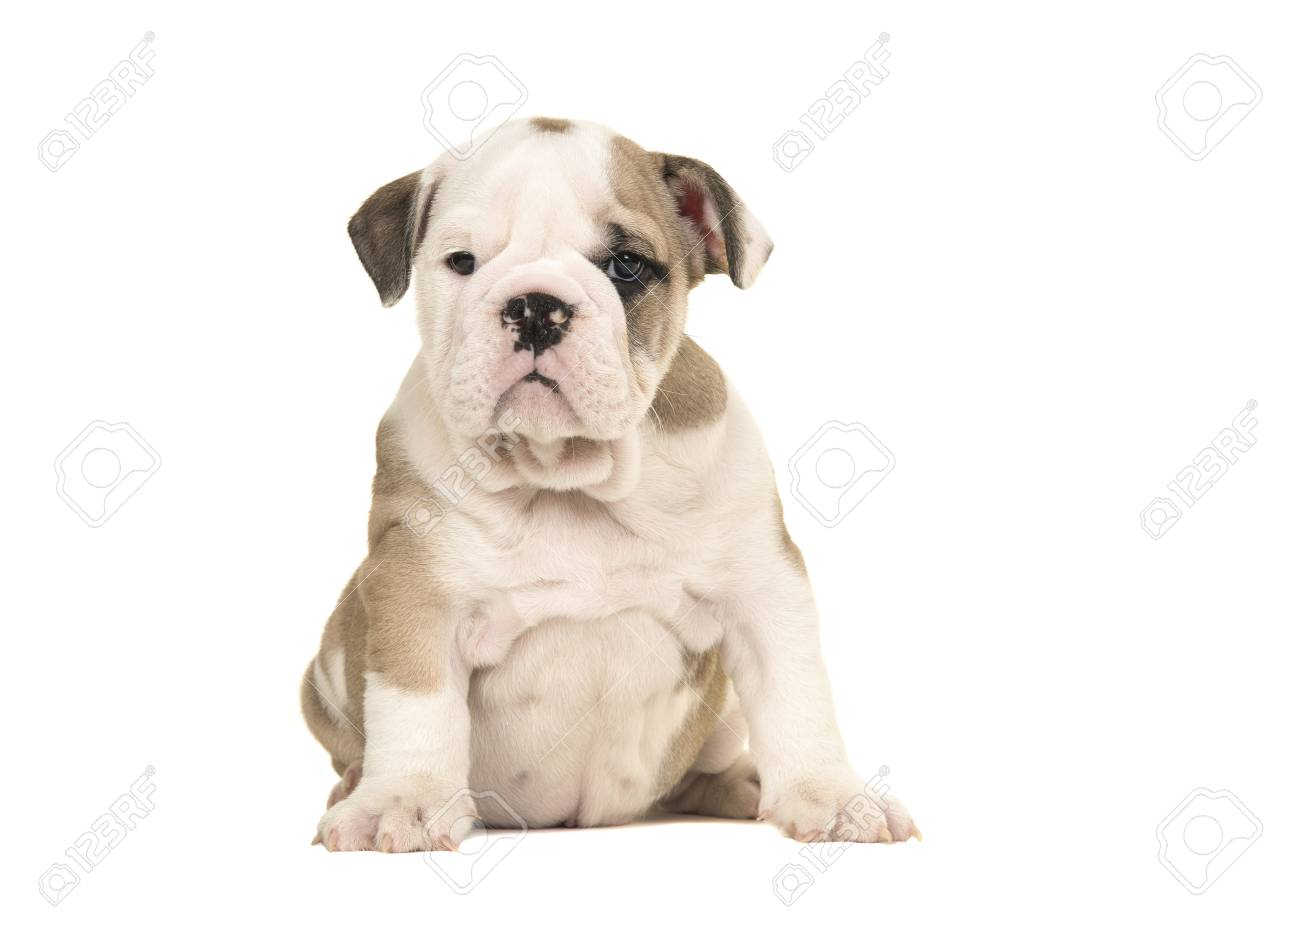 Brown And White English Bulldog Puppy Sitting And Looking At Stock Photo Picture And Royalty Free Image Image 81583638